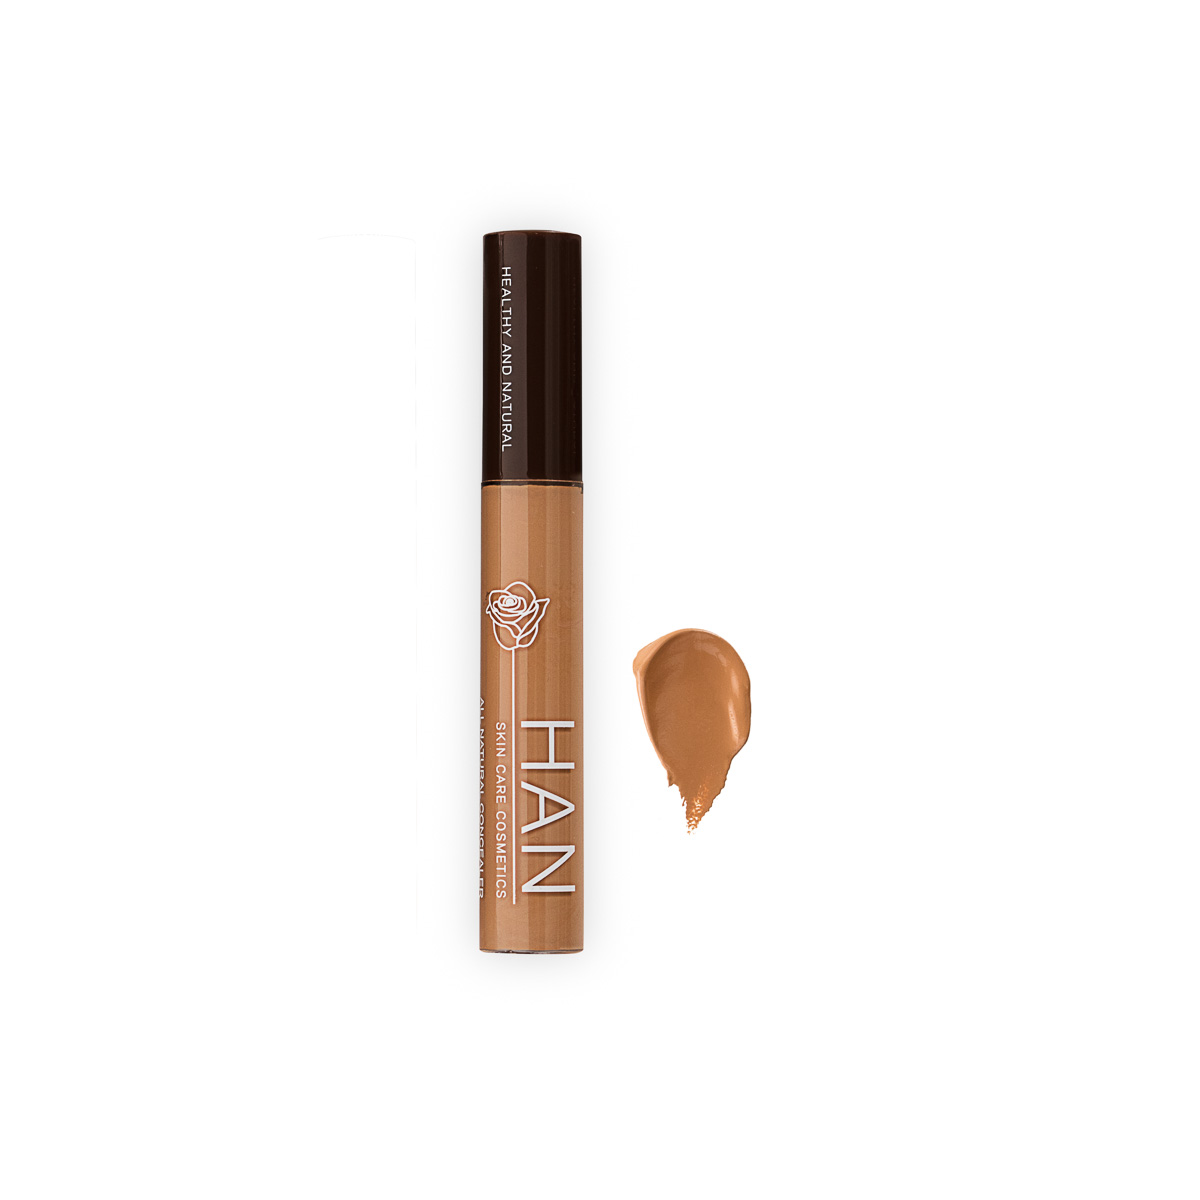 HAN Concealer - Medium Dark